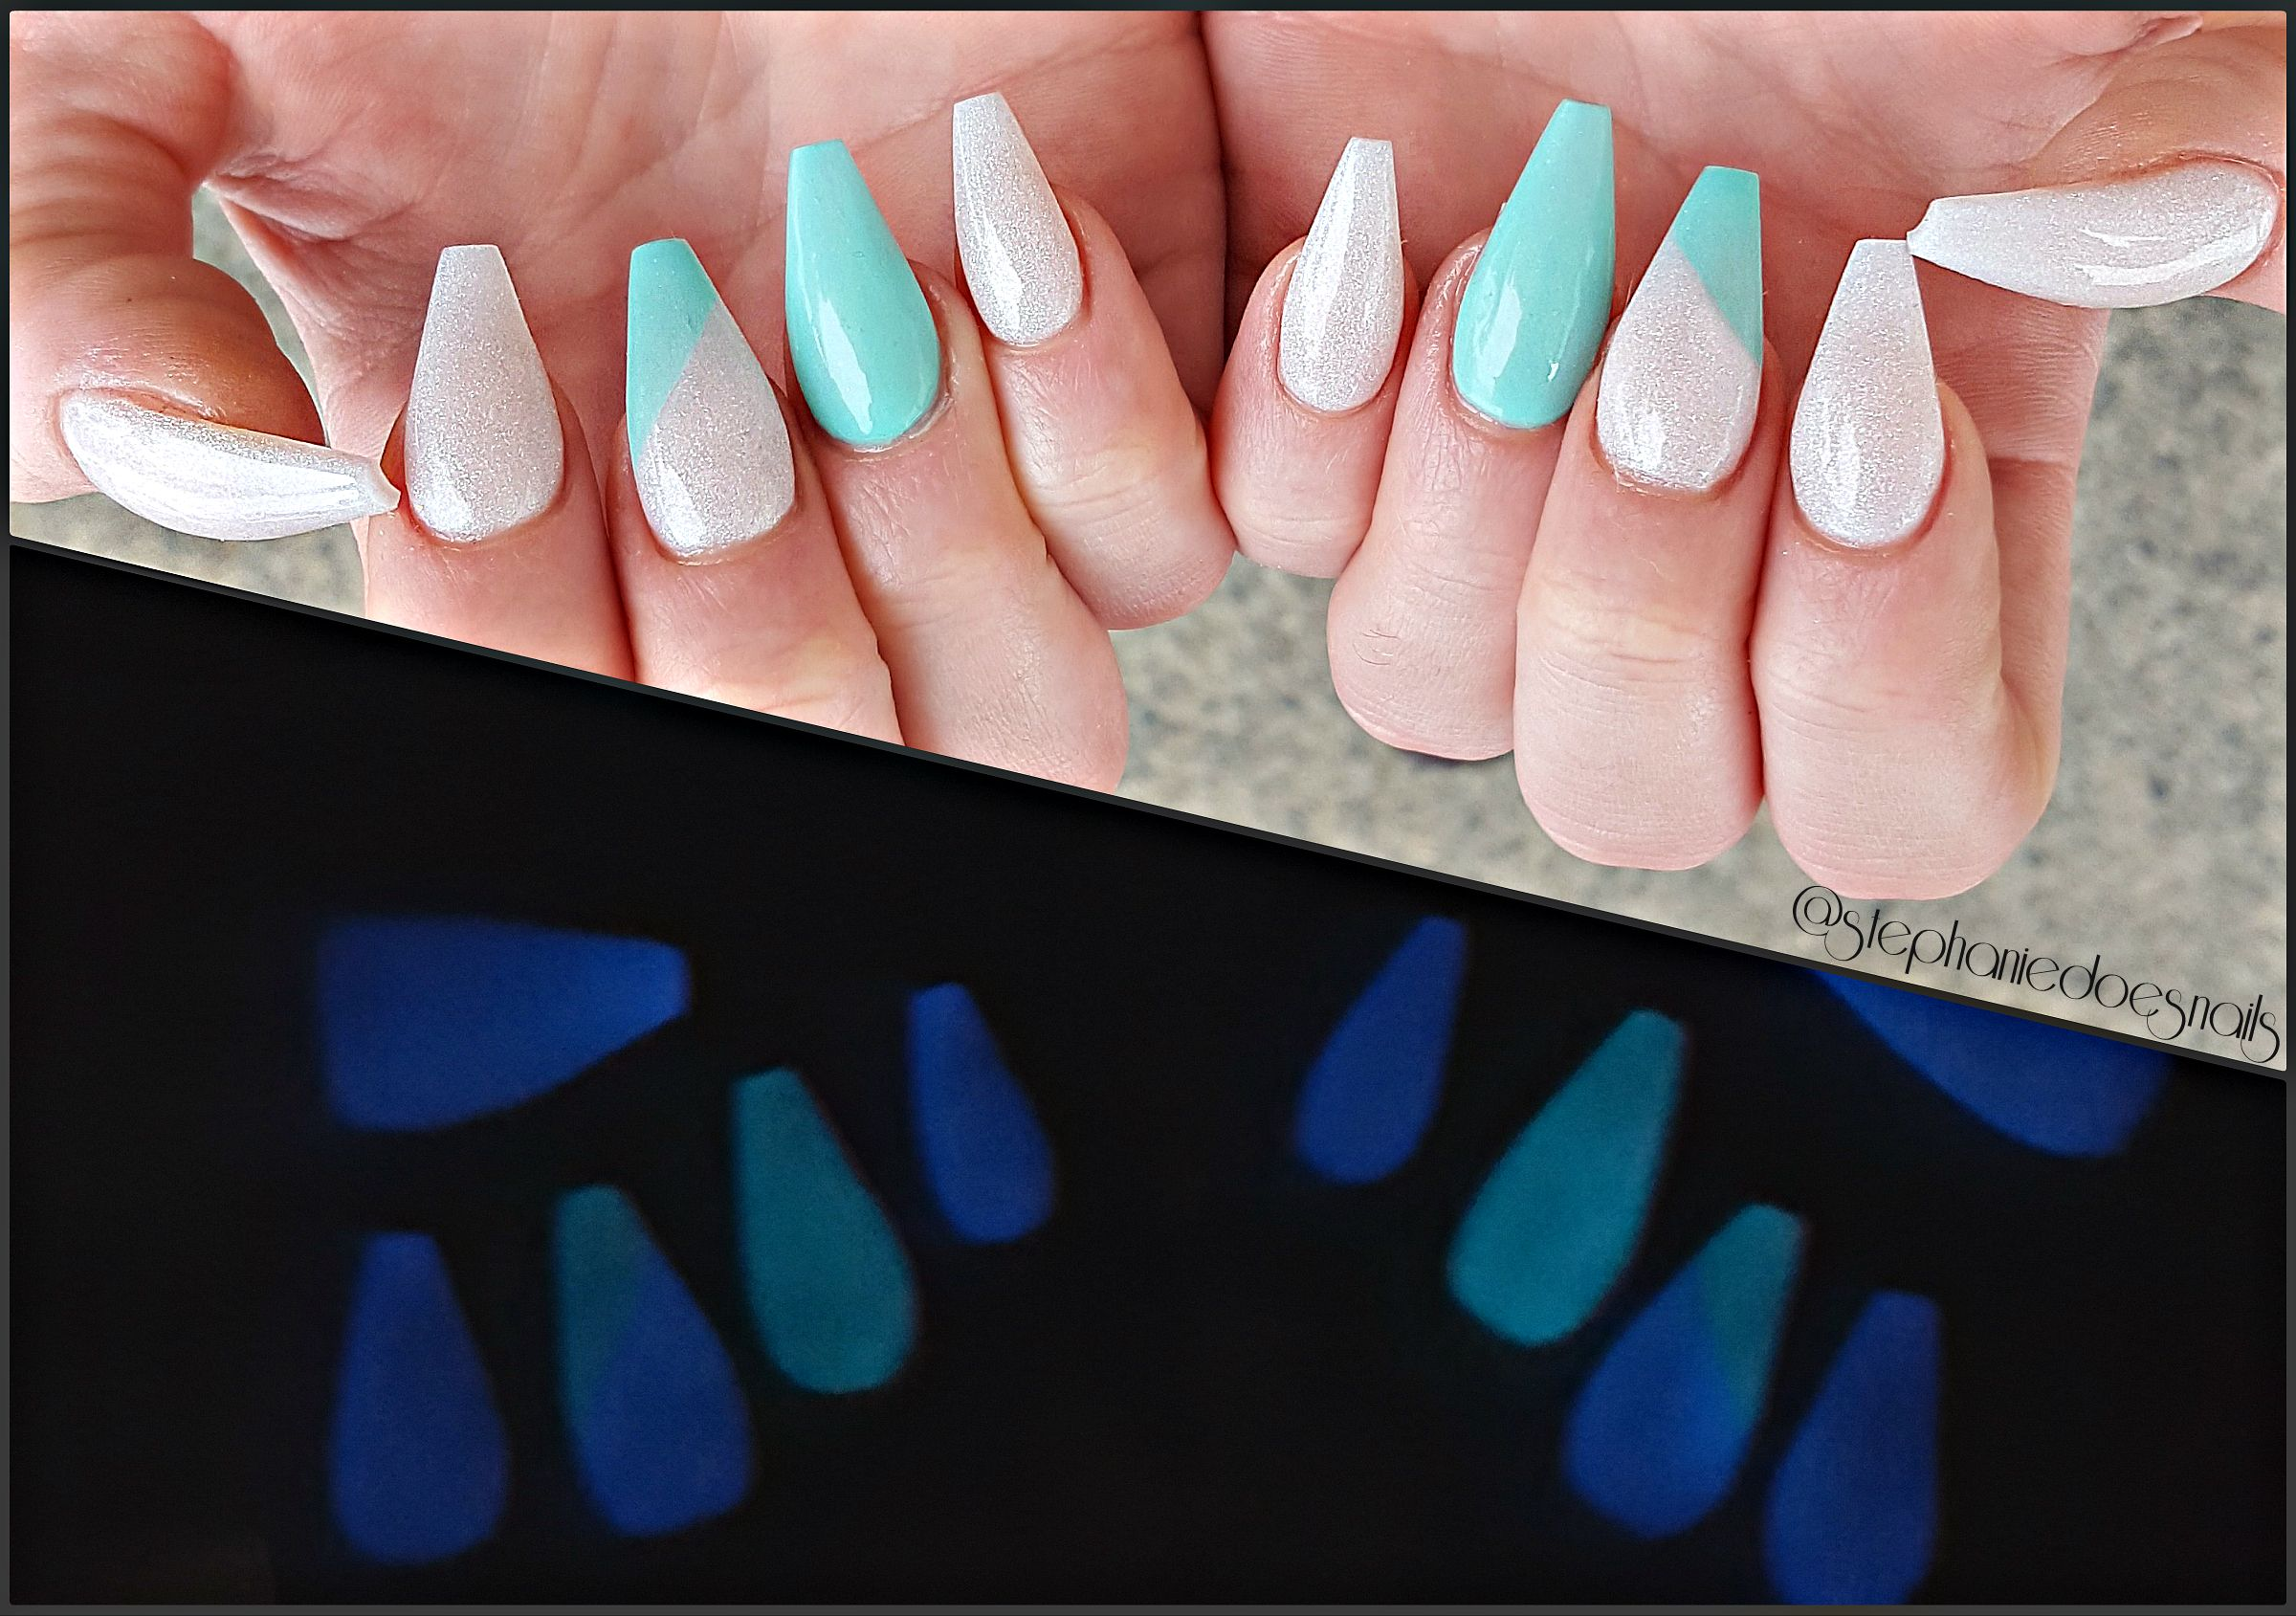 Glow in the dark coffin nails   Nails   Pinterest